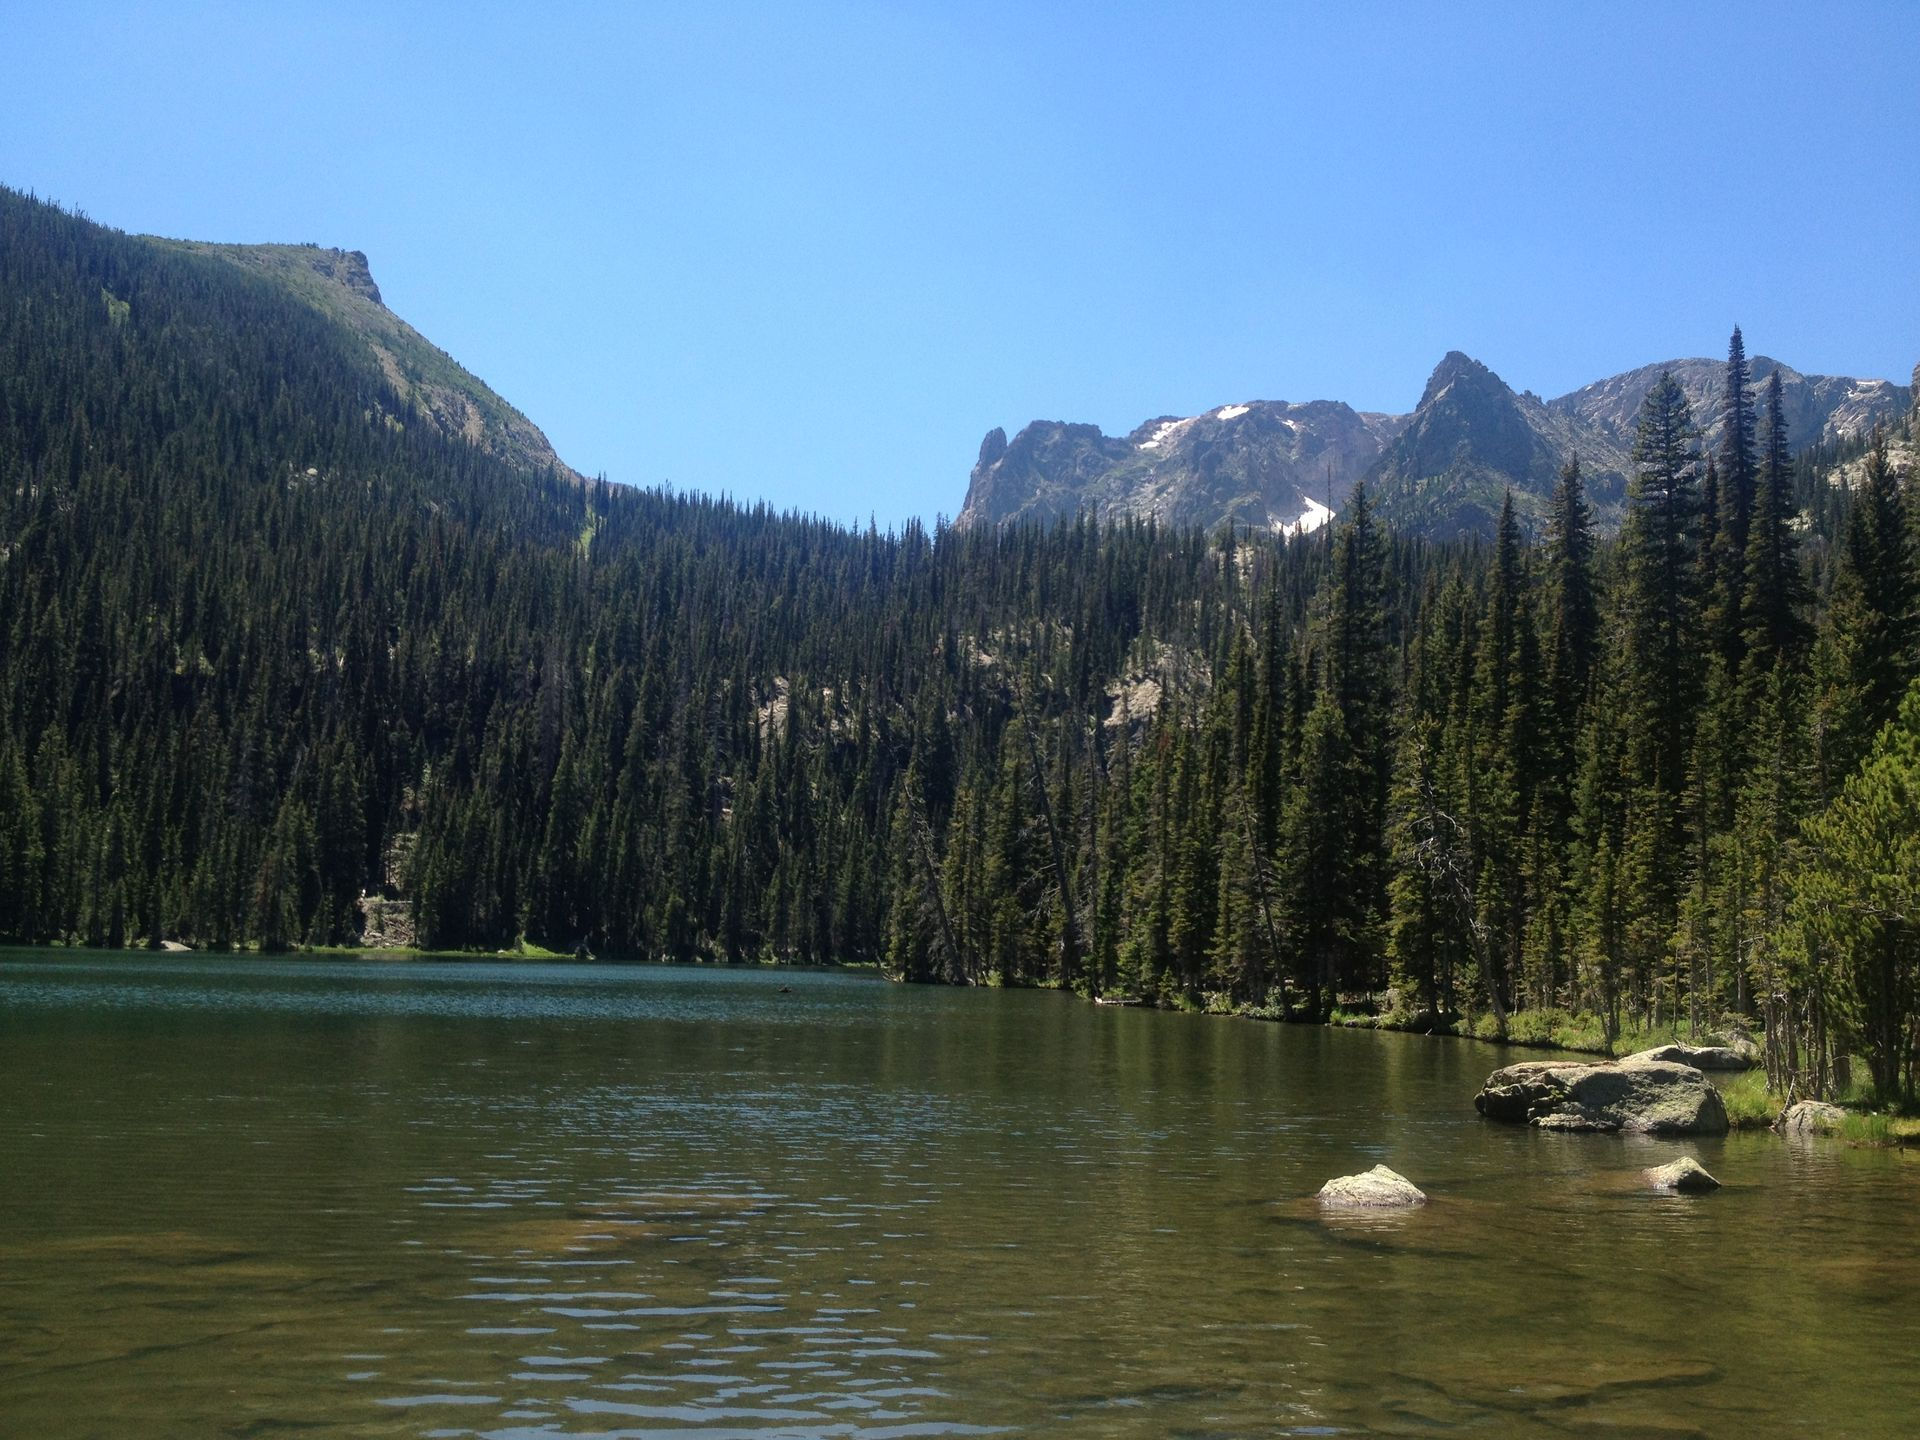 Popular with trout fishers and campers, Fern Lake is one of the most popular destinations in Rocky Mountain National Park.  National Park Service